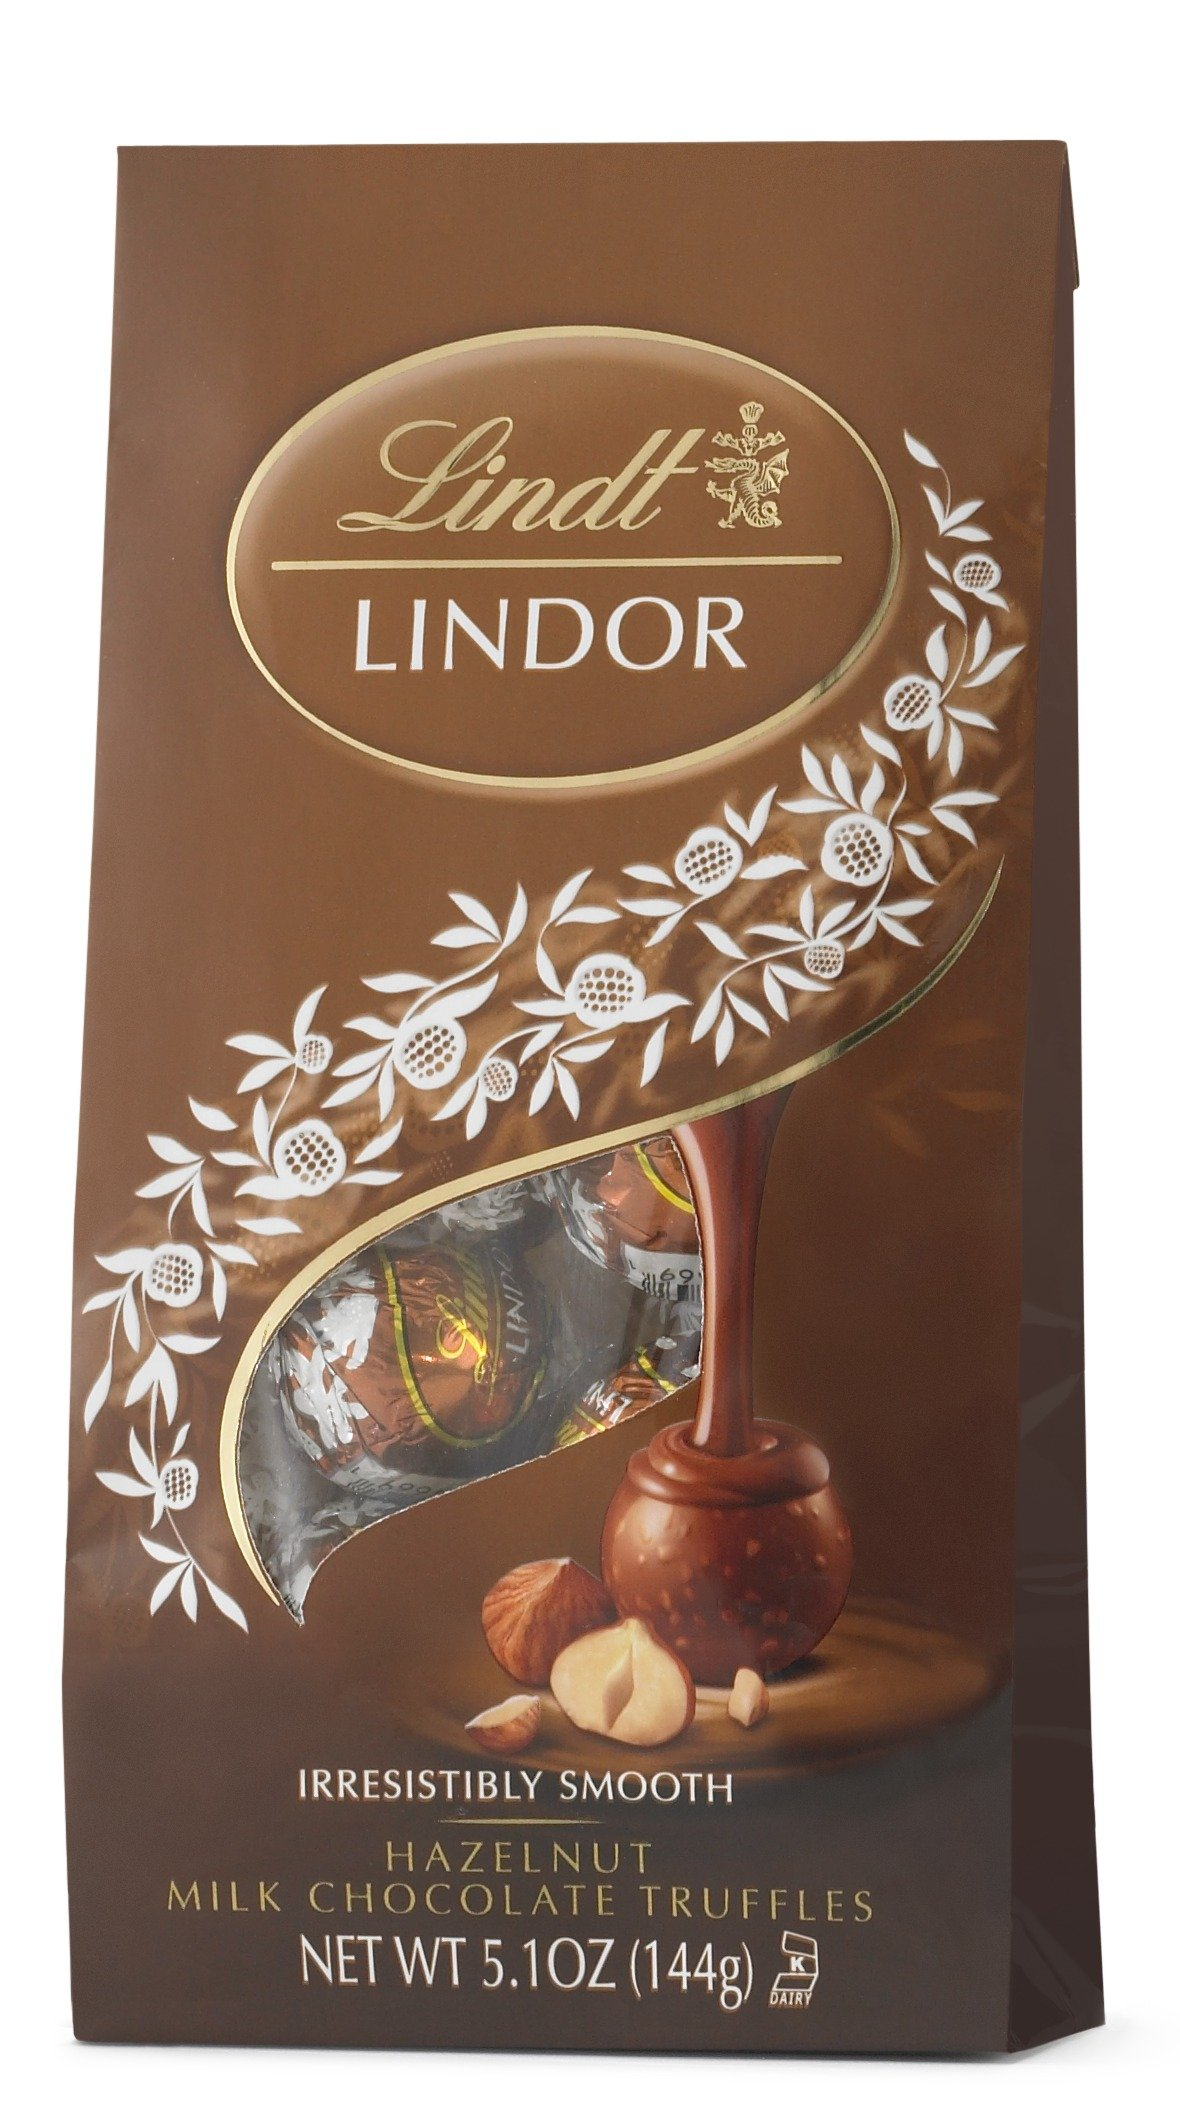 Lindt LINDOR Hazelnut Milk Chocolate Truffles, 5.1 Ounce